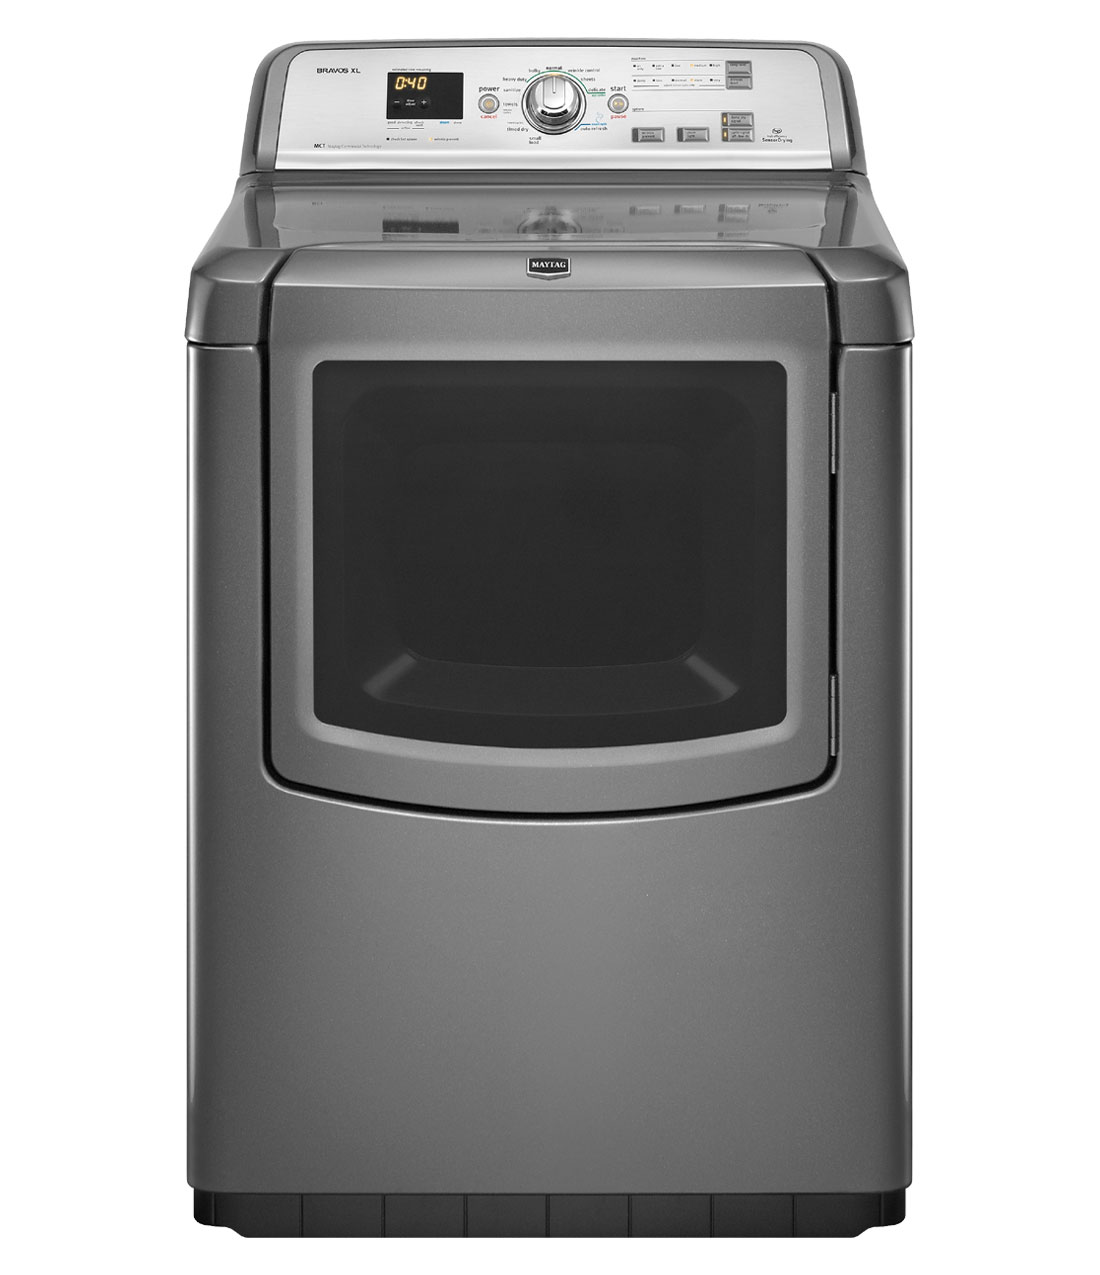 Maytag Bravos XL 7.3 cu. ft. Electric Dryer with Steam